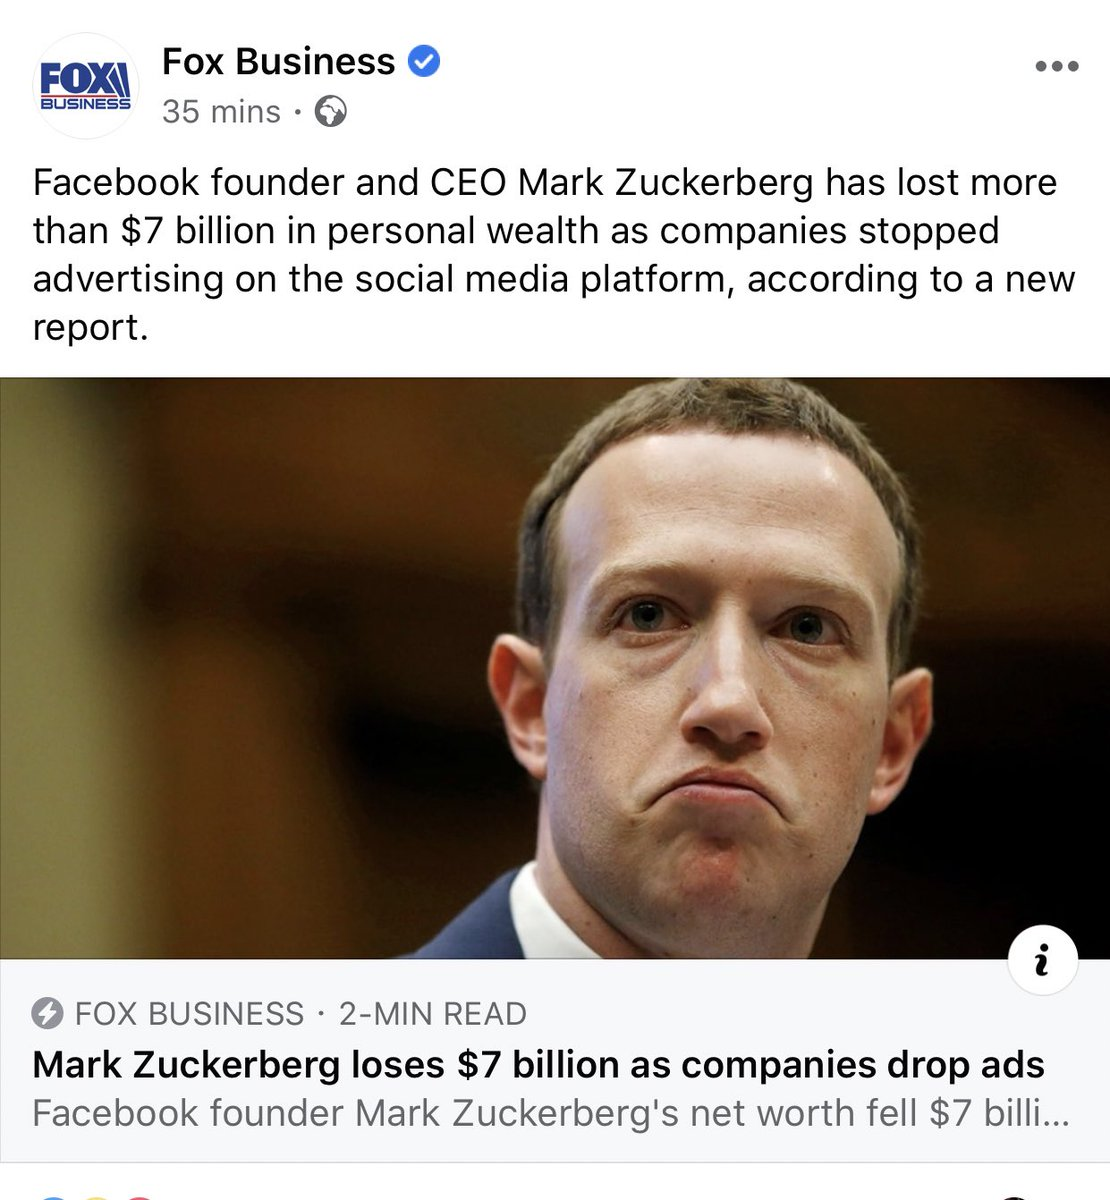 The Corporates now want to dictate politics. The battle against globalism is real.